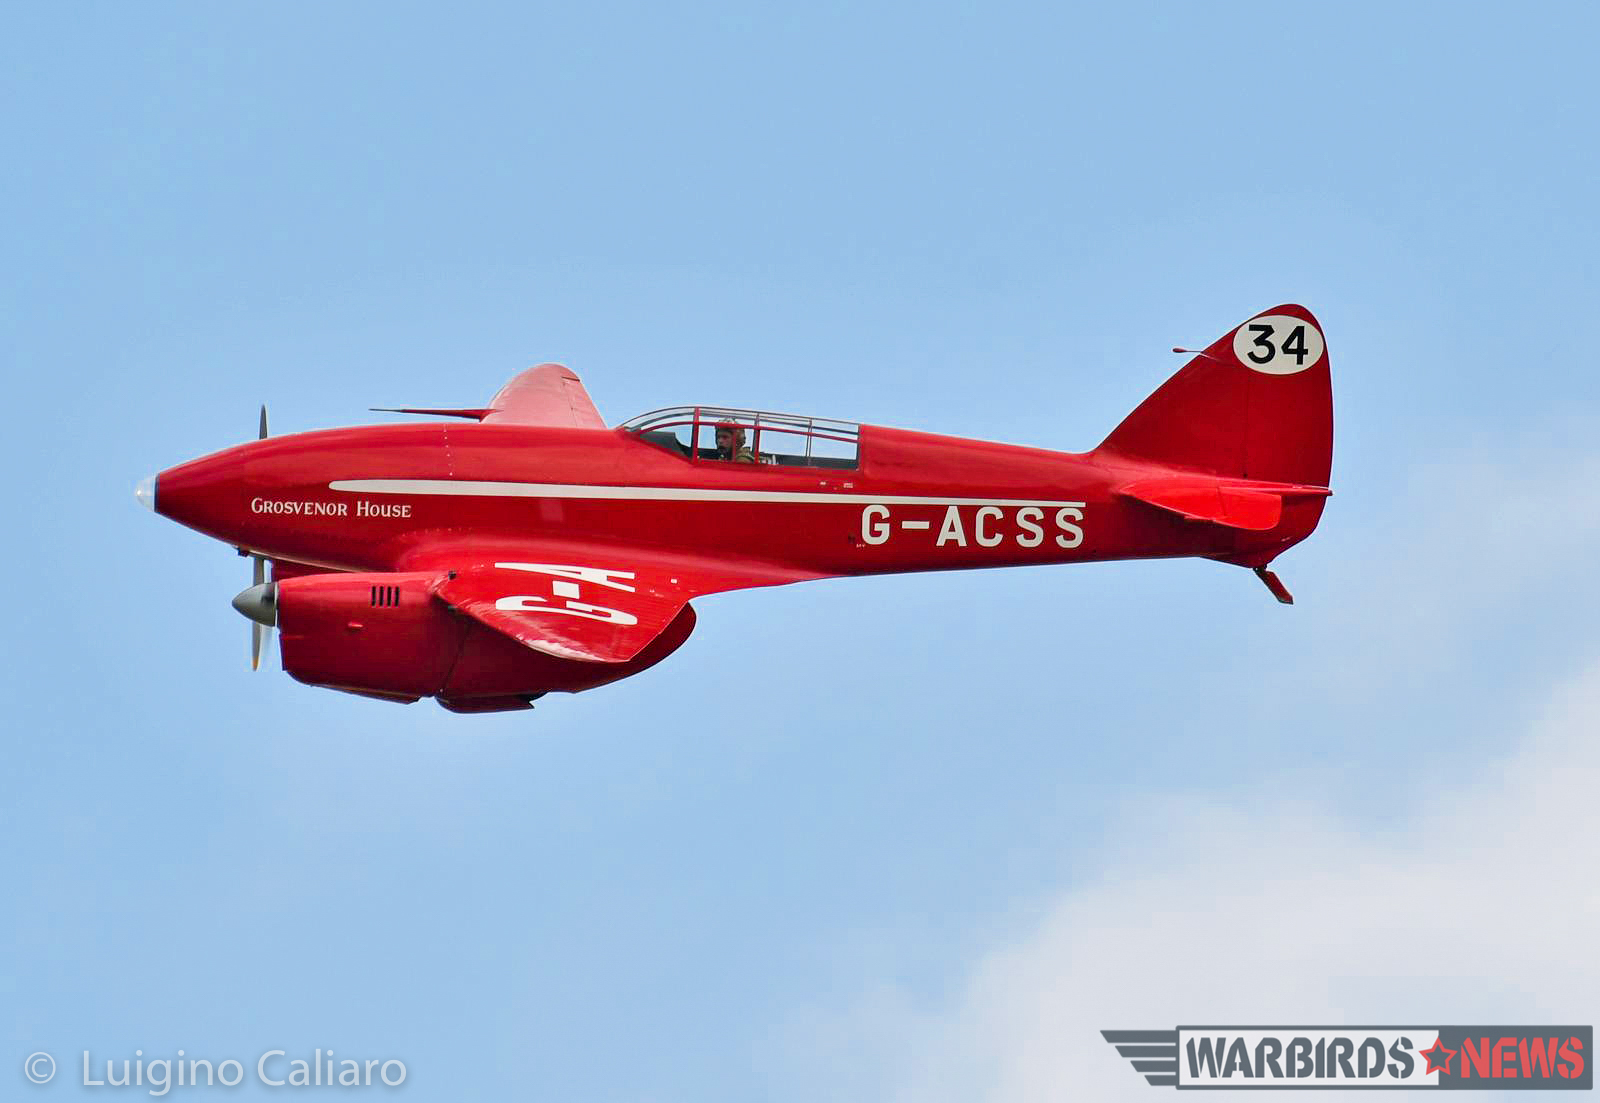 The legendary DH.88 Comet 'Grosvenor House' owned by the Shuttleworth Collection. This very aircraft won the London-to-Sydney McRobertson Air Race in 1934. (photo by Luigino Caliaro)